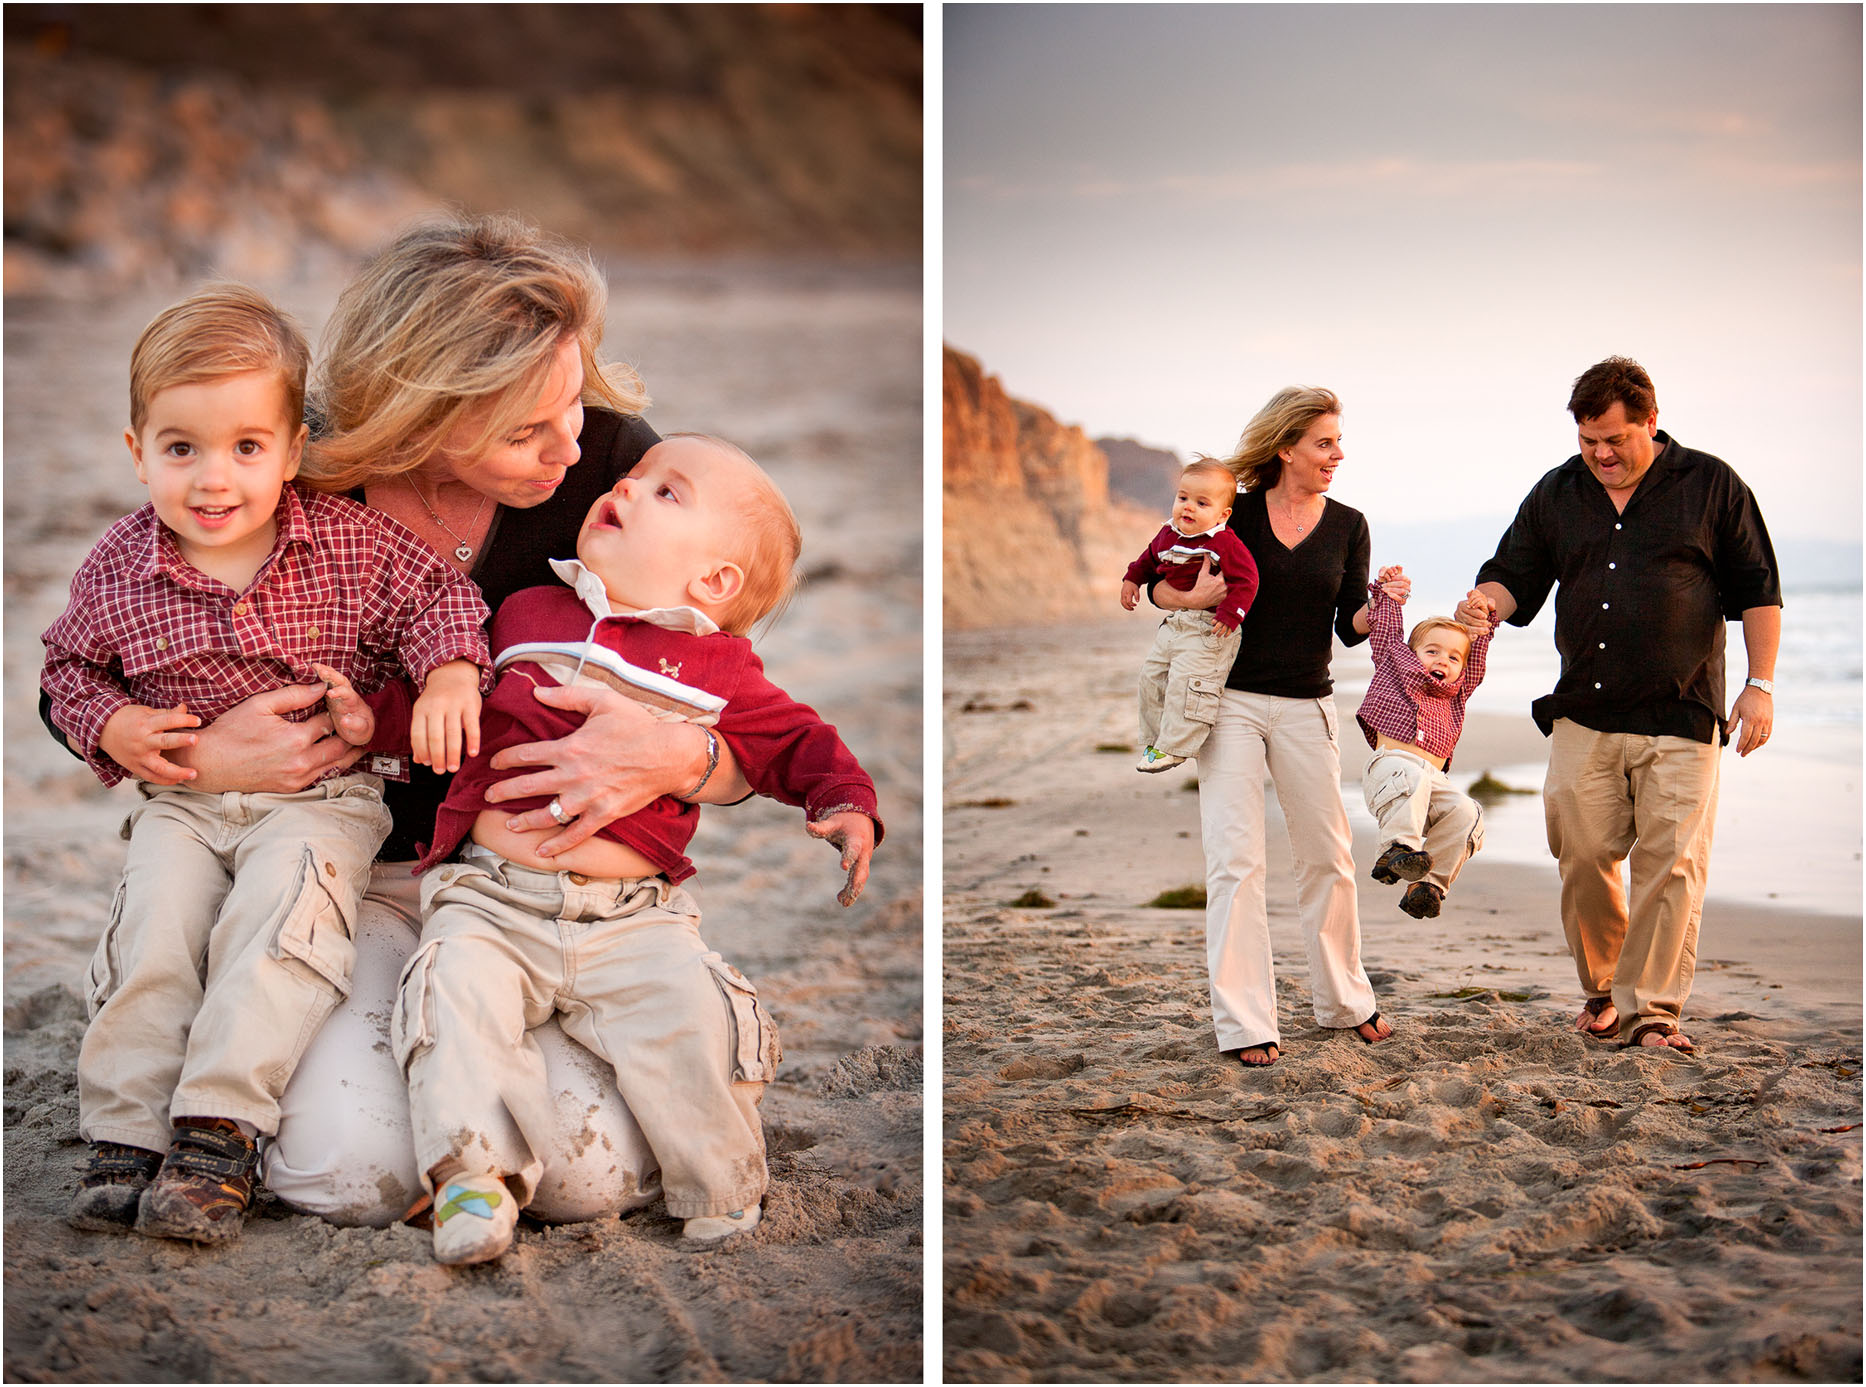 59-family-couples-blainebethanyphotography-DUP5.jpg